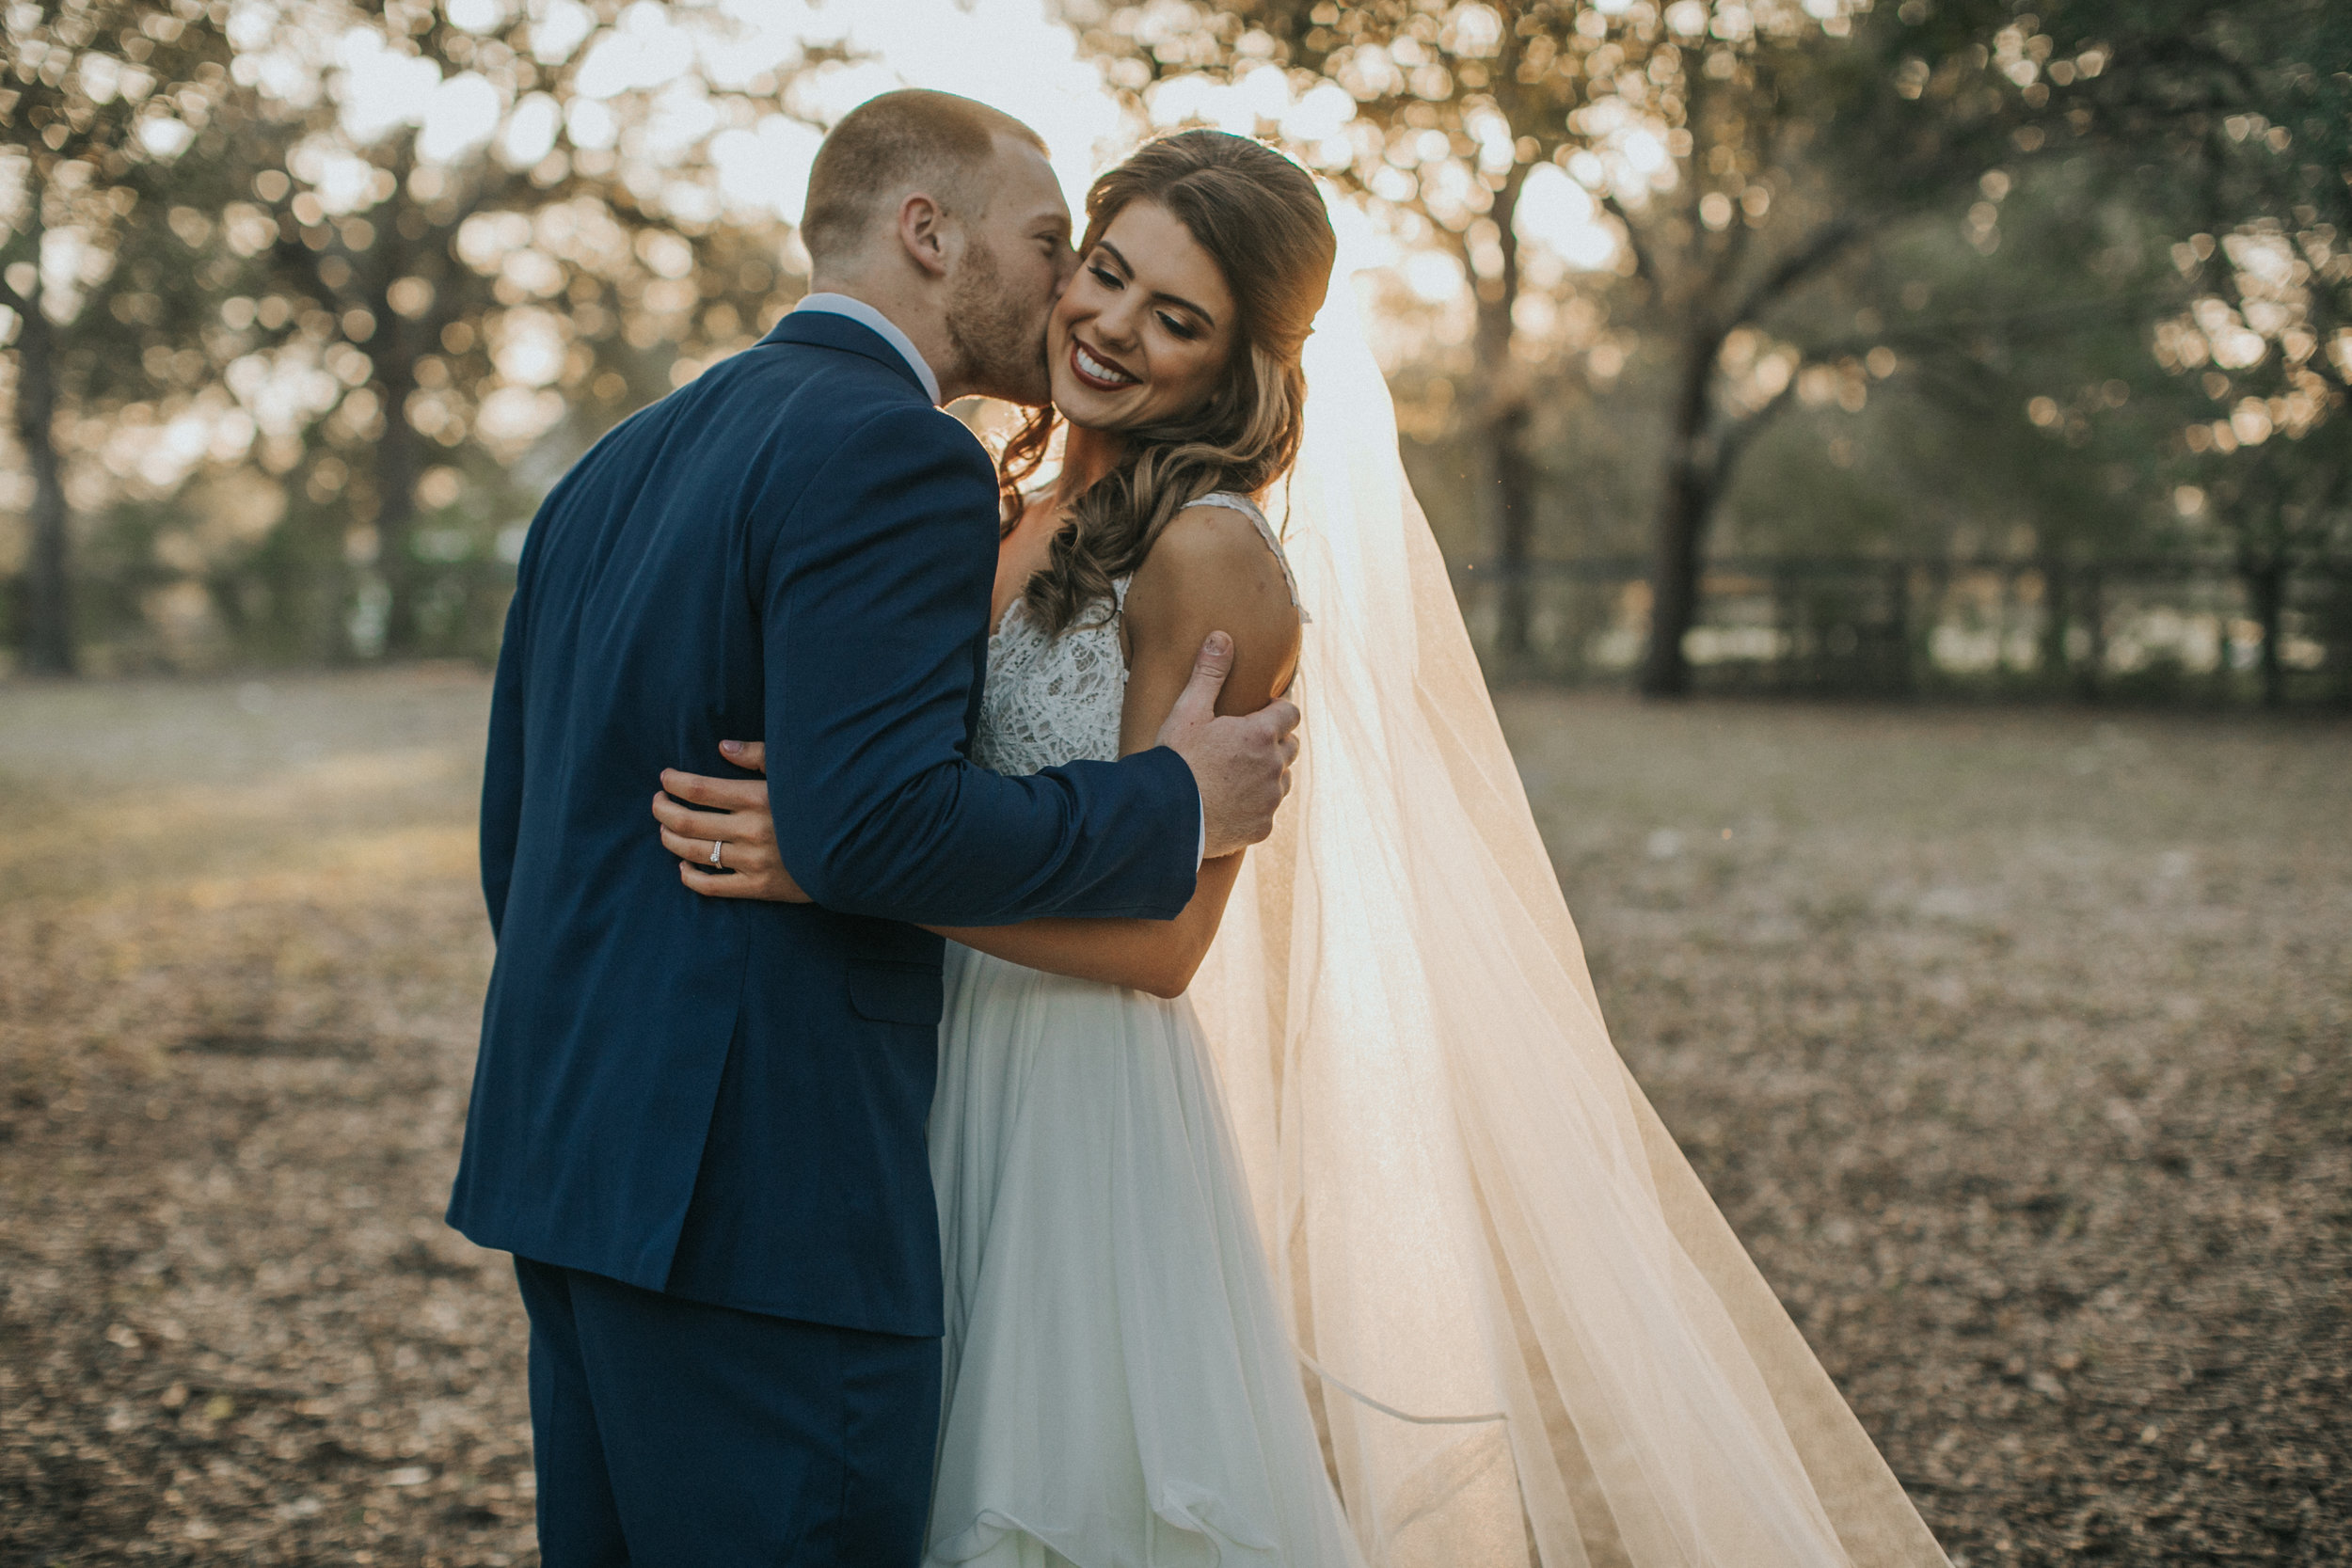 Sweet kisses from the groom to his bride